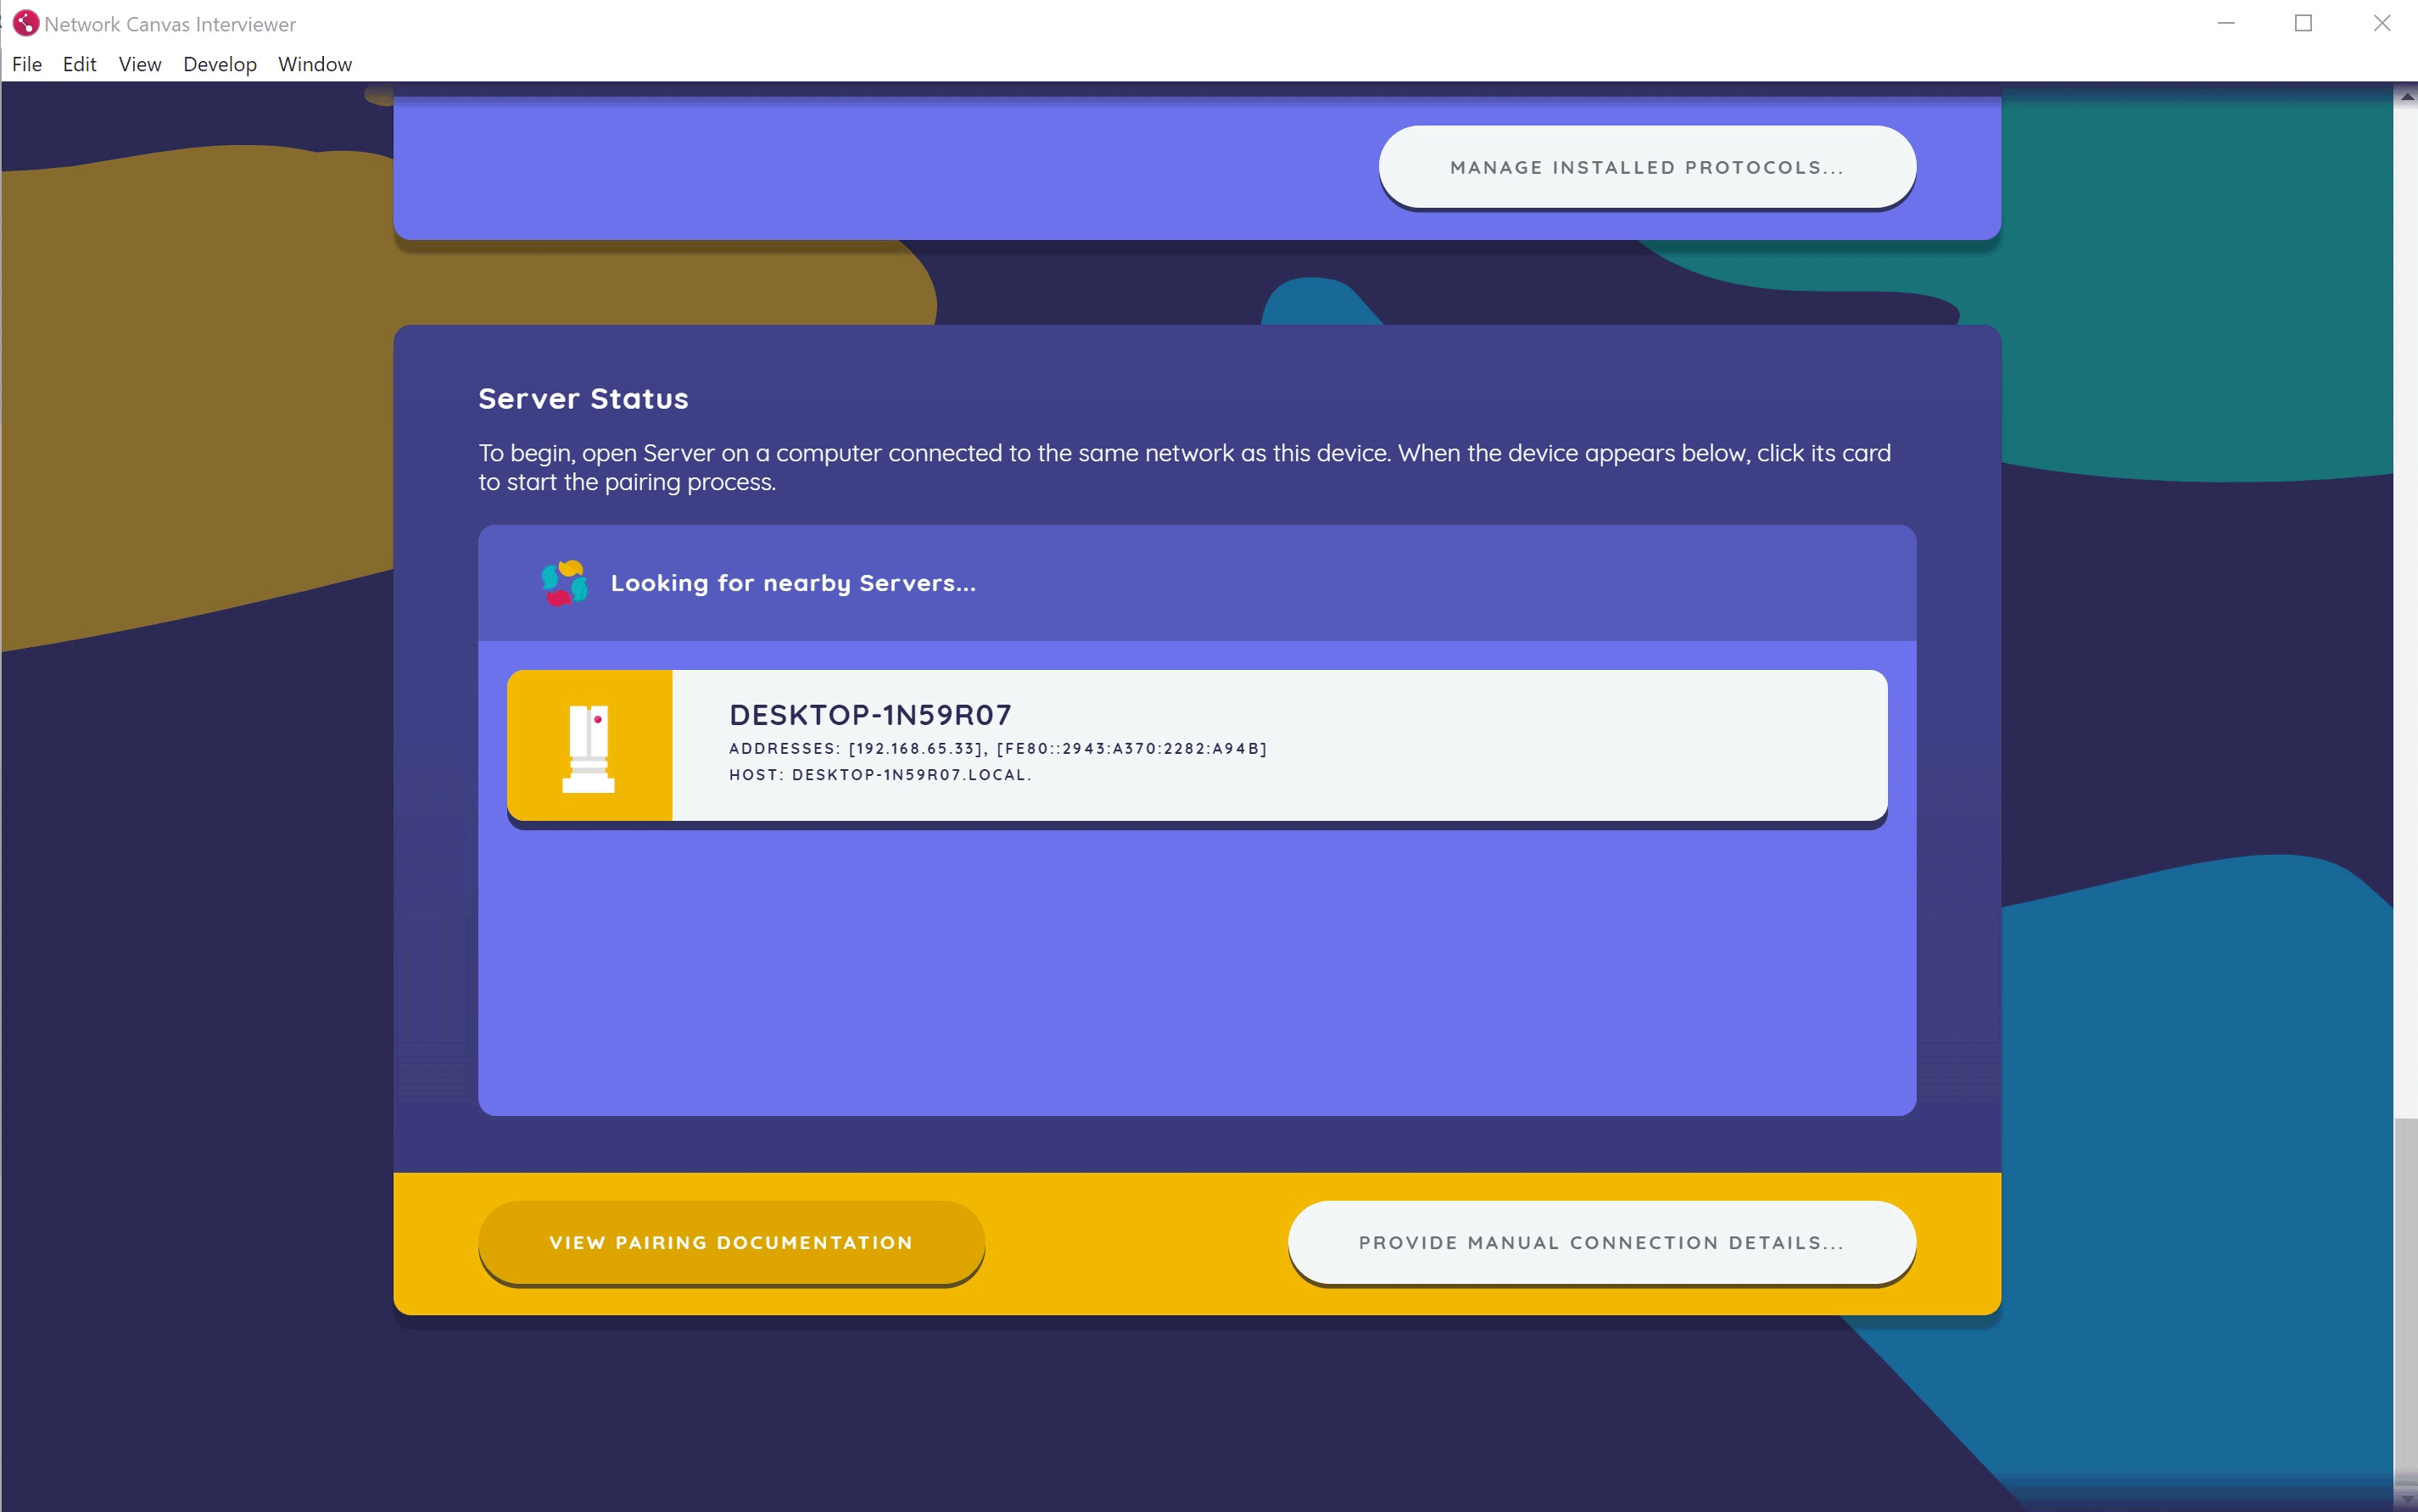 The automatic server discovery dialog